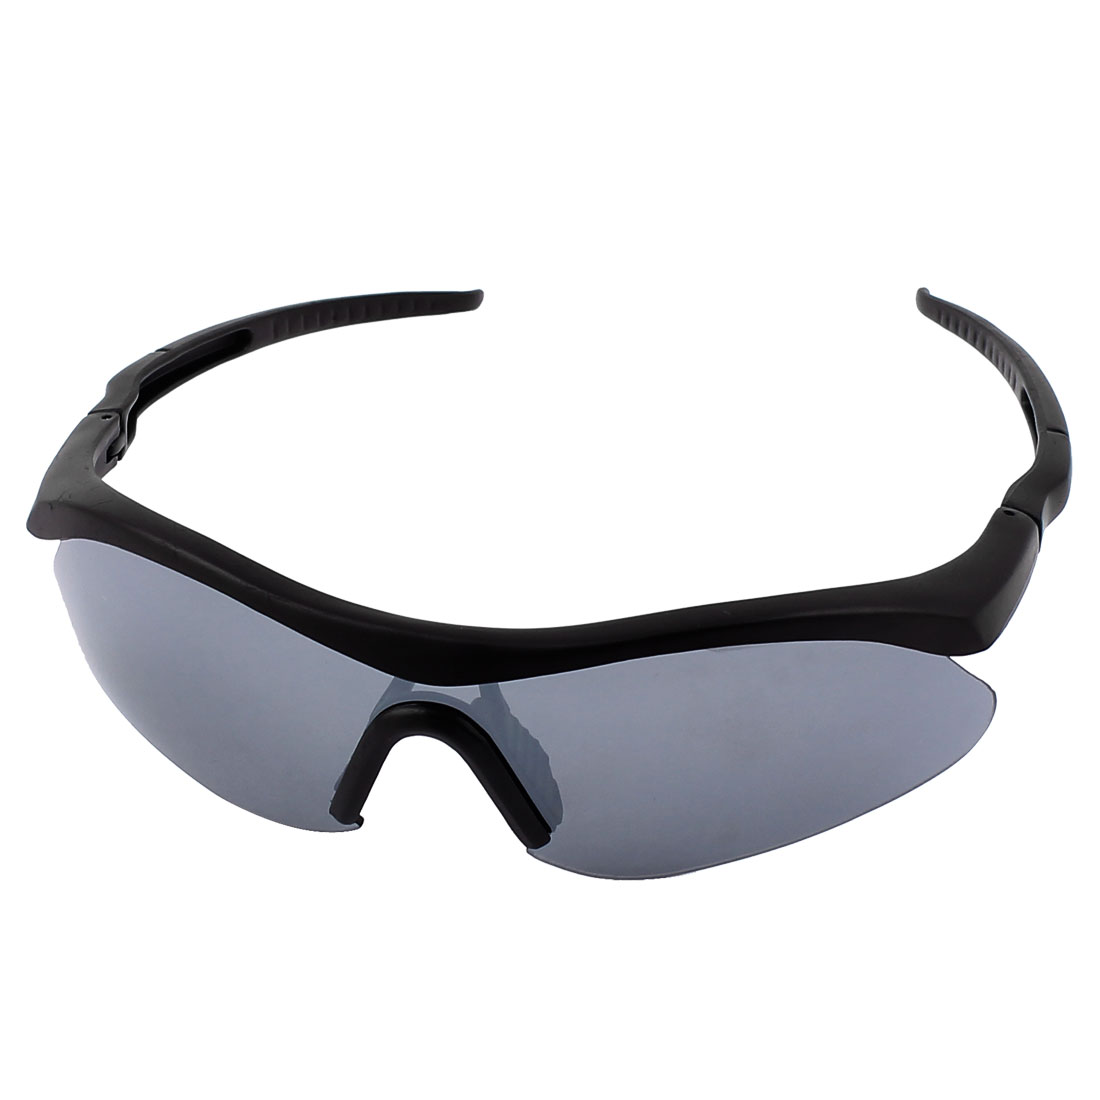 Motorcycle Riding Bicycle Sports Wind Resistant Sunglasses Glasses Gray